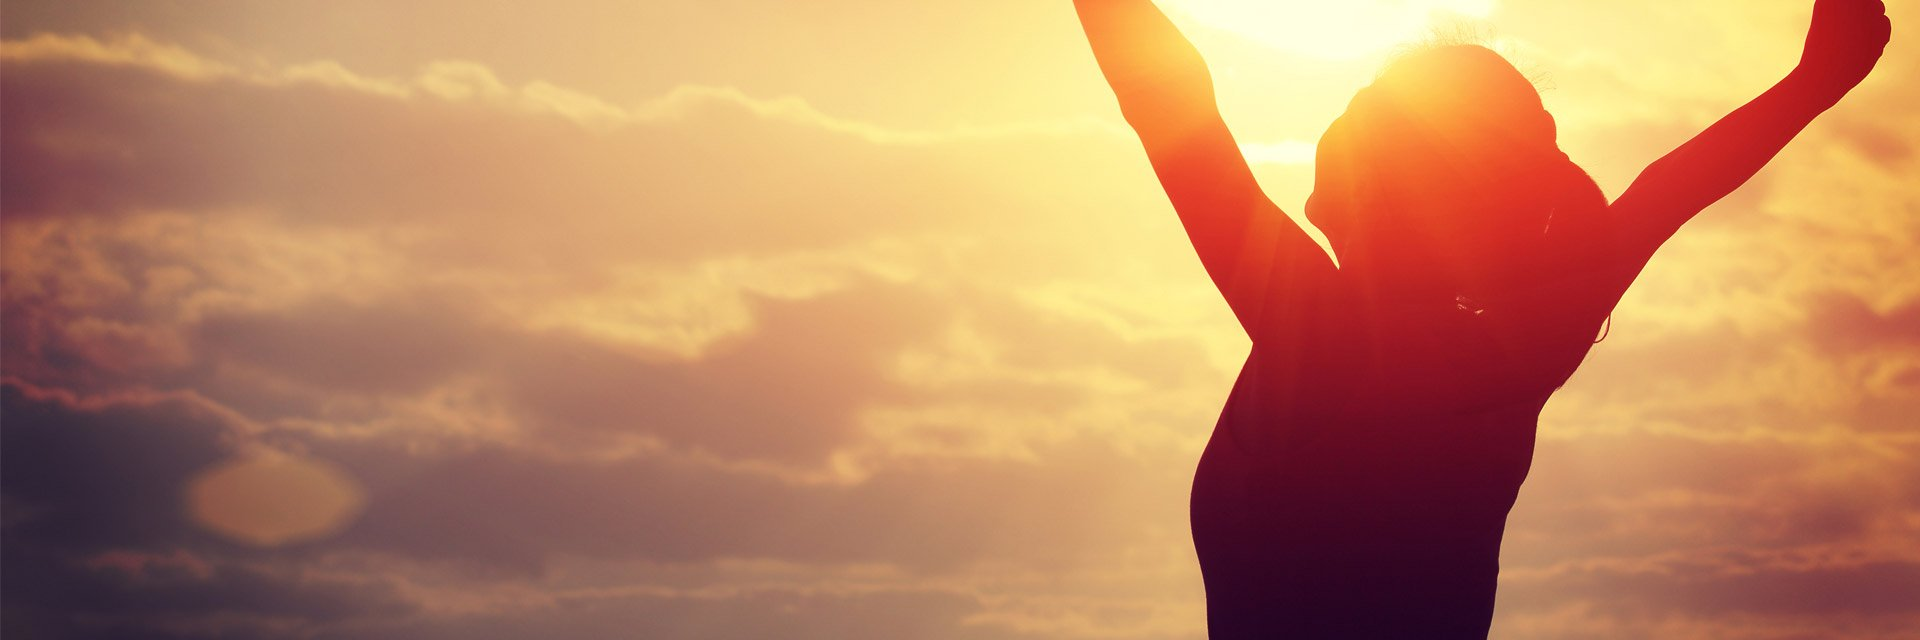 Woman with arms outstretched at sunrise